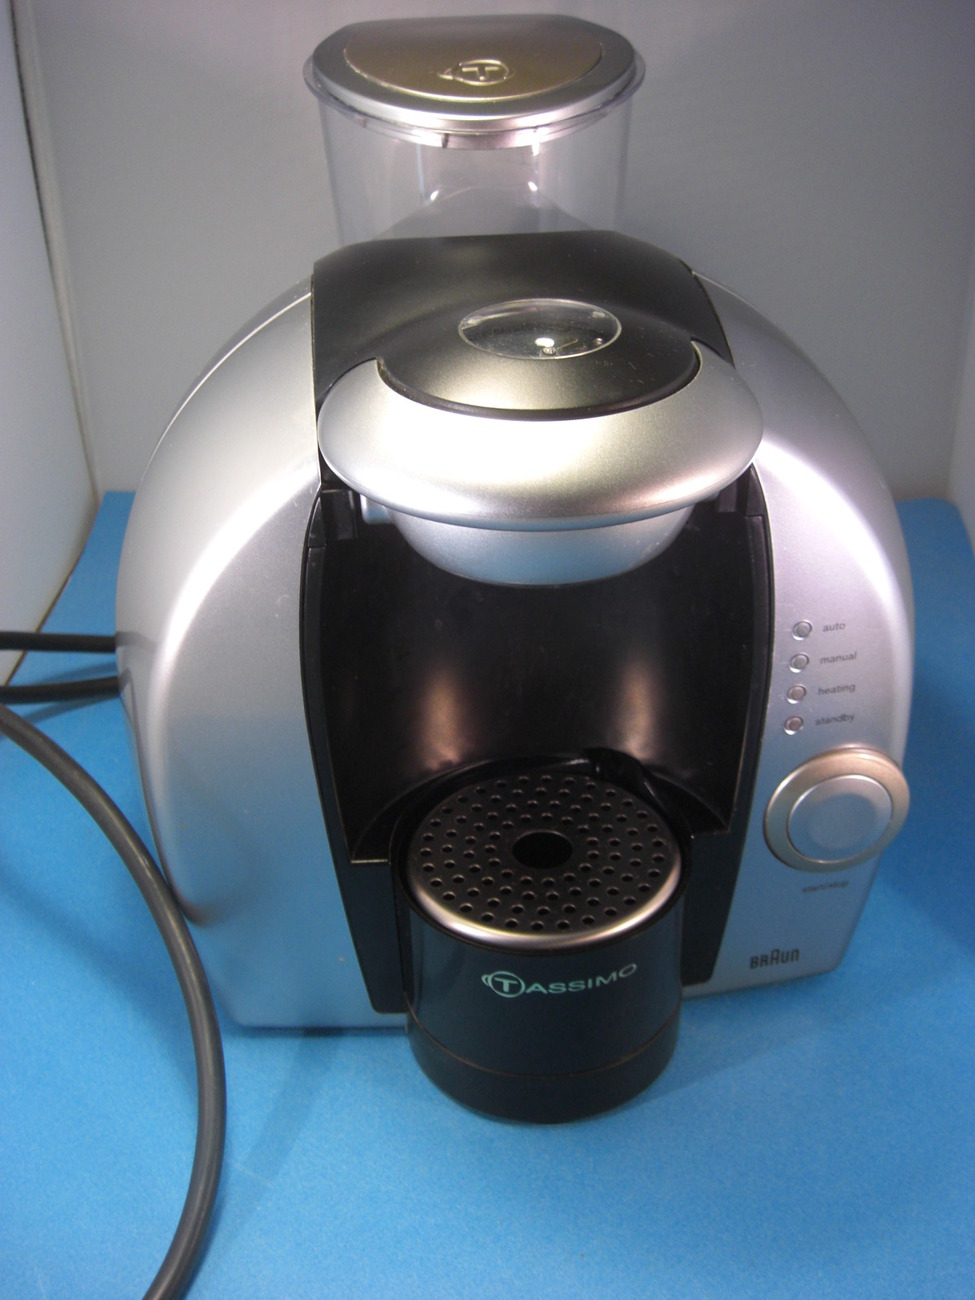 Braun Tassimo One Cup Coffee Maker Model 3107 - Coffee Makers